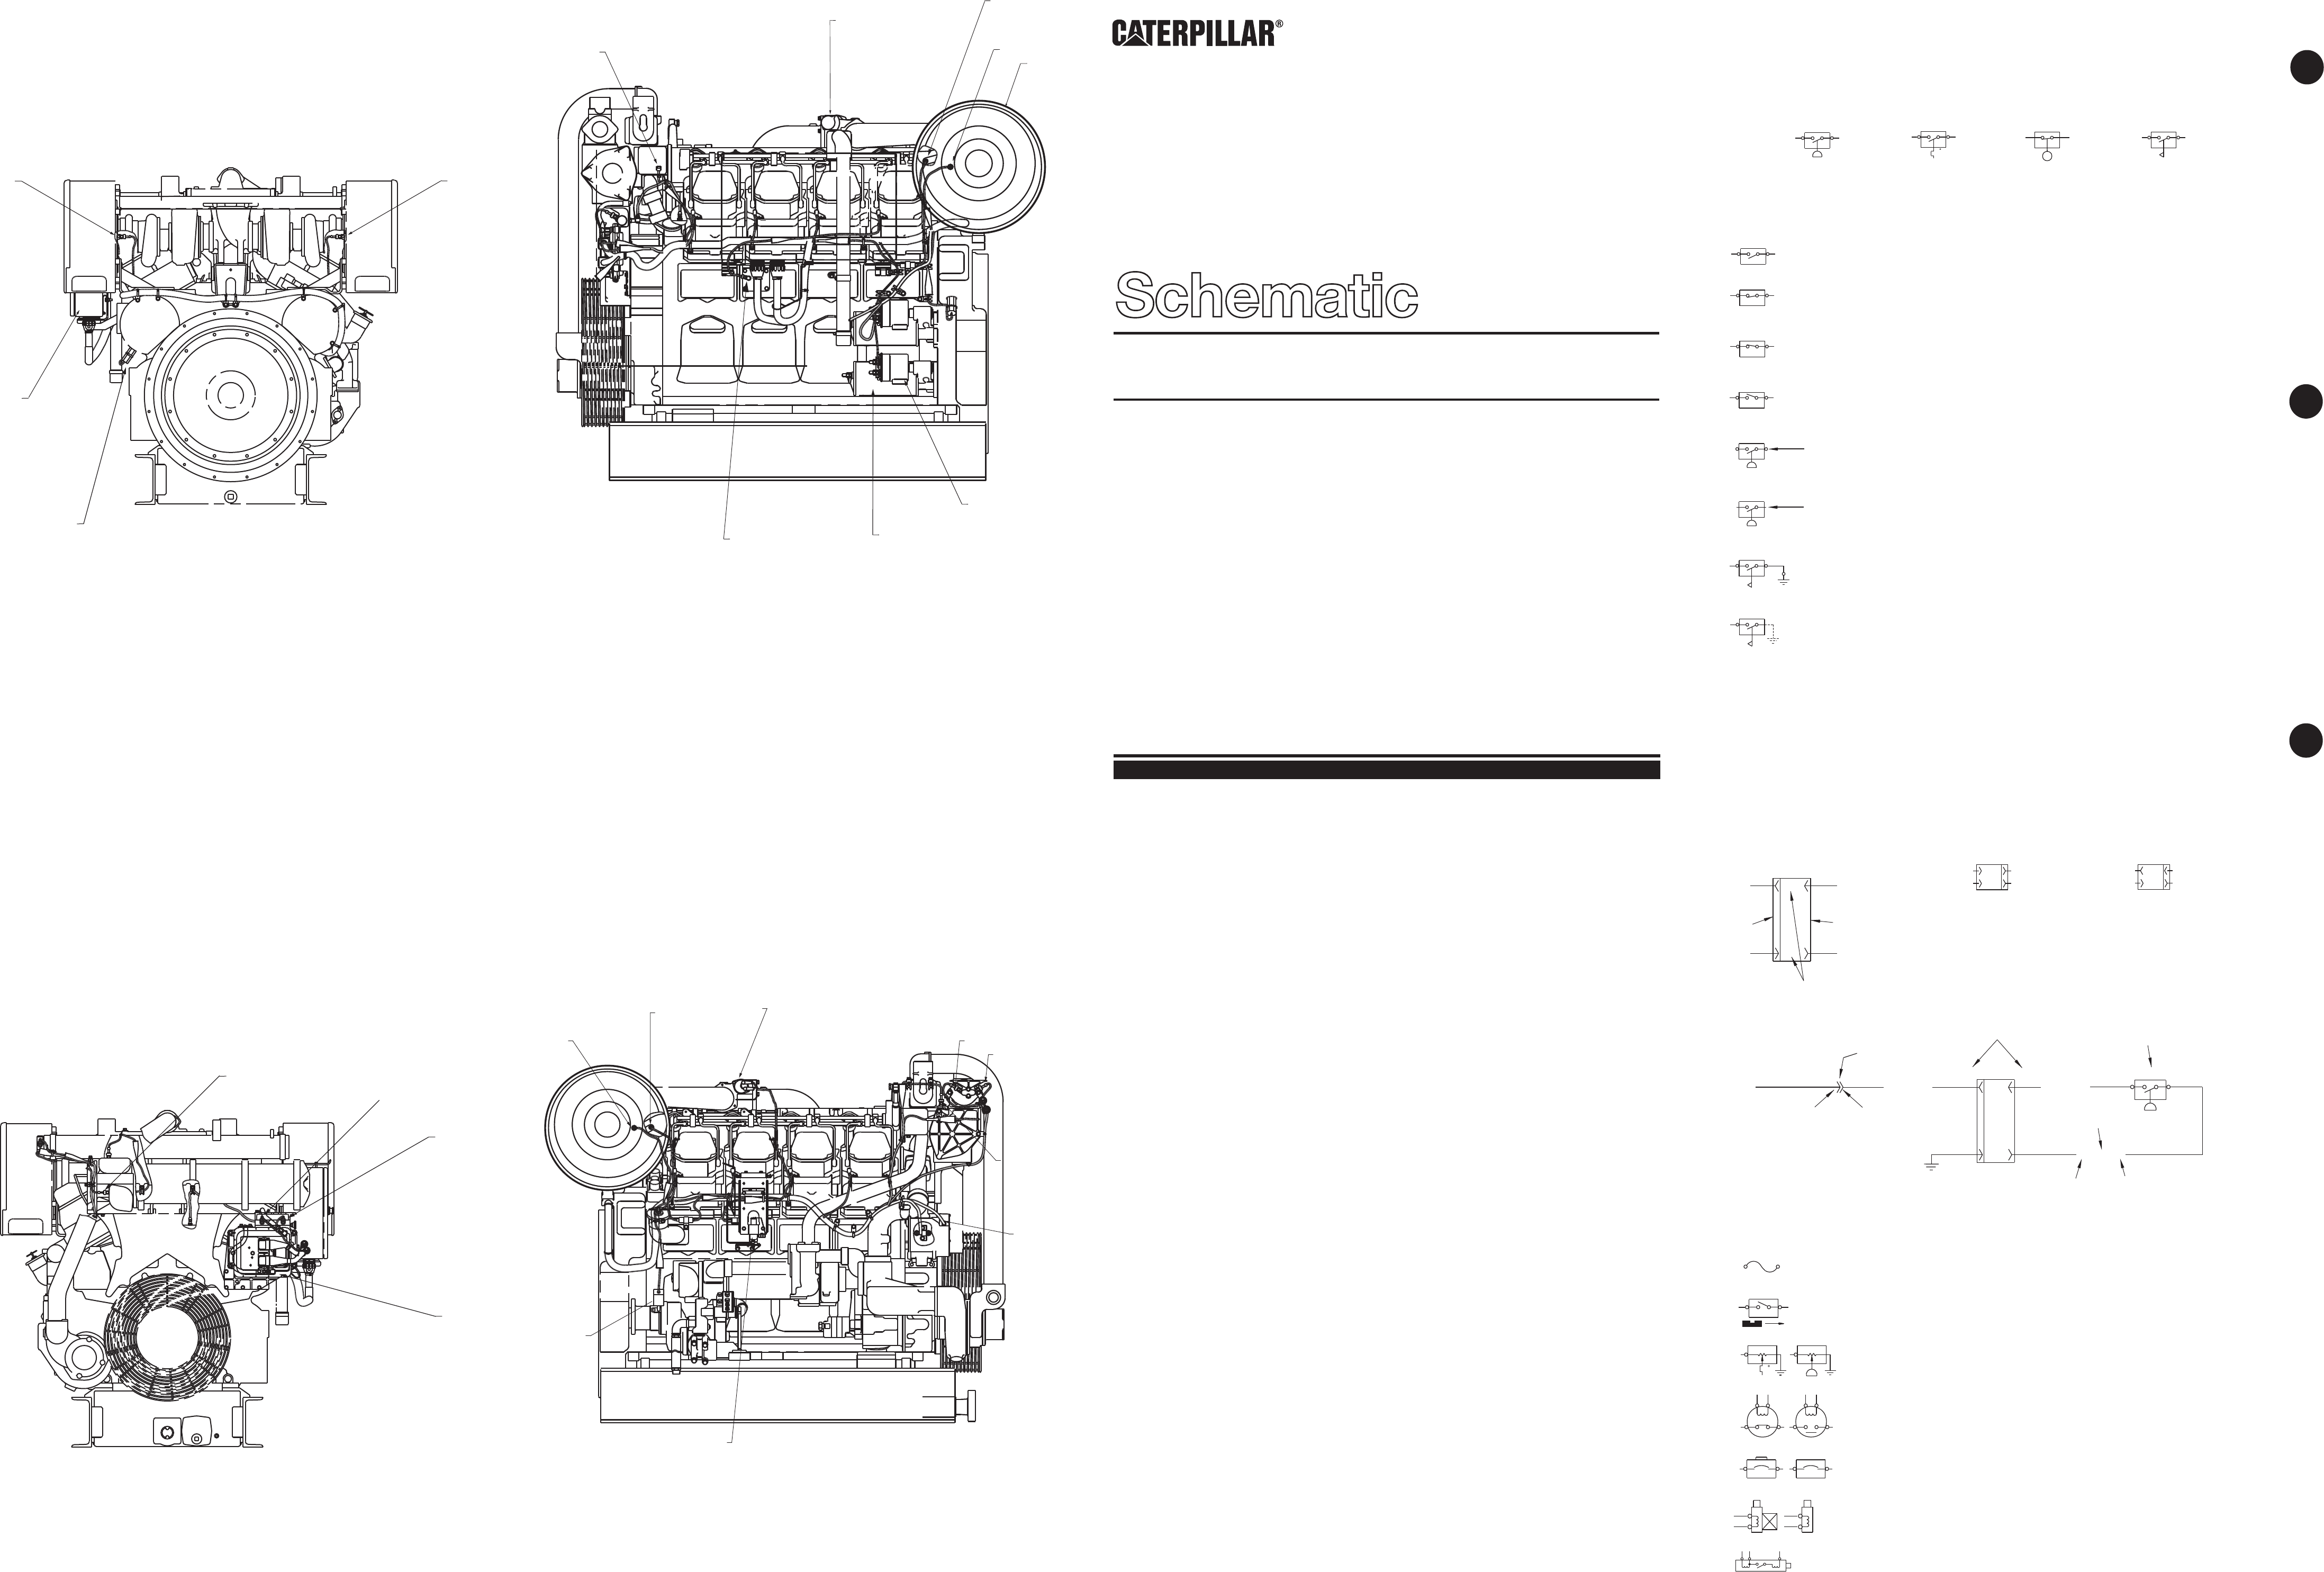 3508B INDUSTRIAL ENGINE ELECTRICAL SYSTEM SCHEMATIC | CAT Machines  Electrical SchematicCAT Machines Electrical Schematic